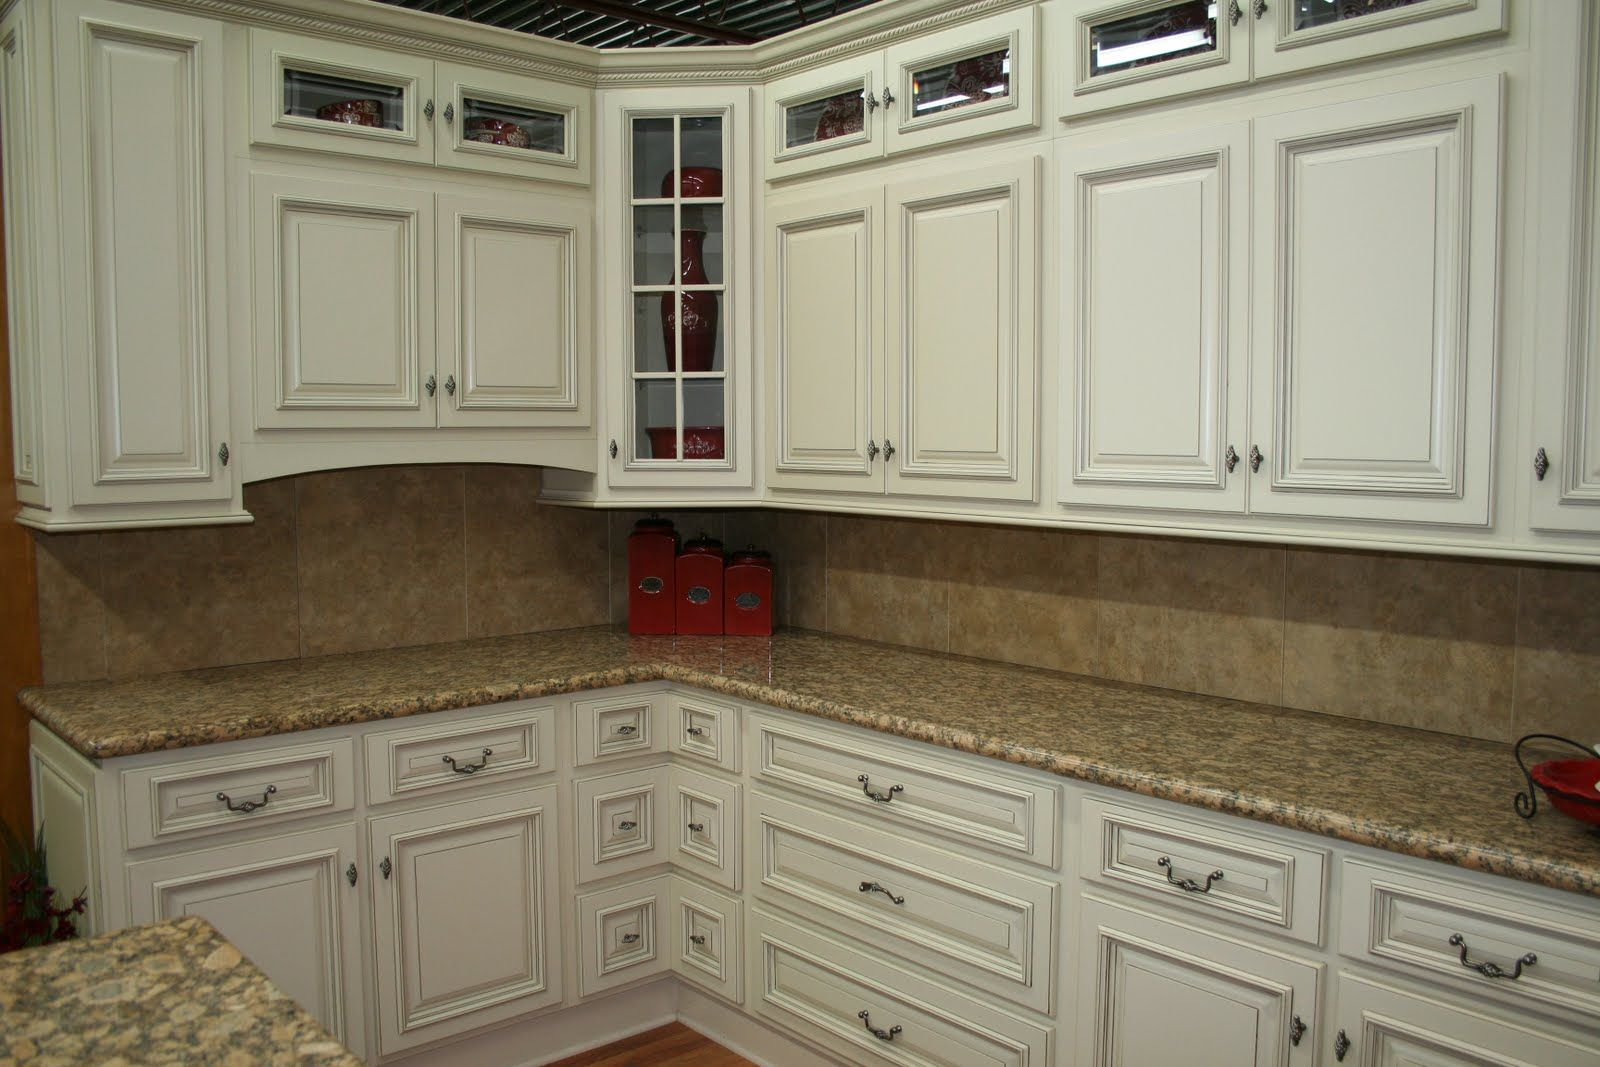 White Kitchen Designs Stone Wood Design Center High Quality Products And Exper Antique White Kitchen Cabinets Vintage Kitchen Cabinets Kitchen Cabinet Design